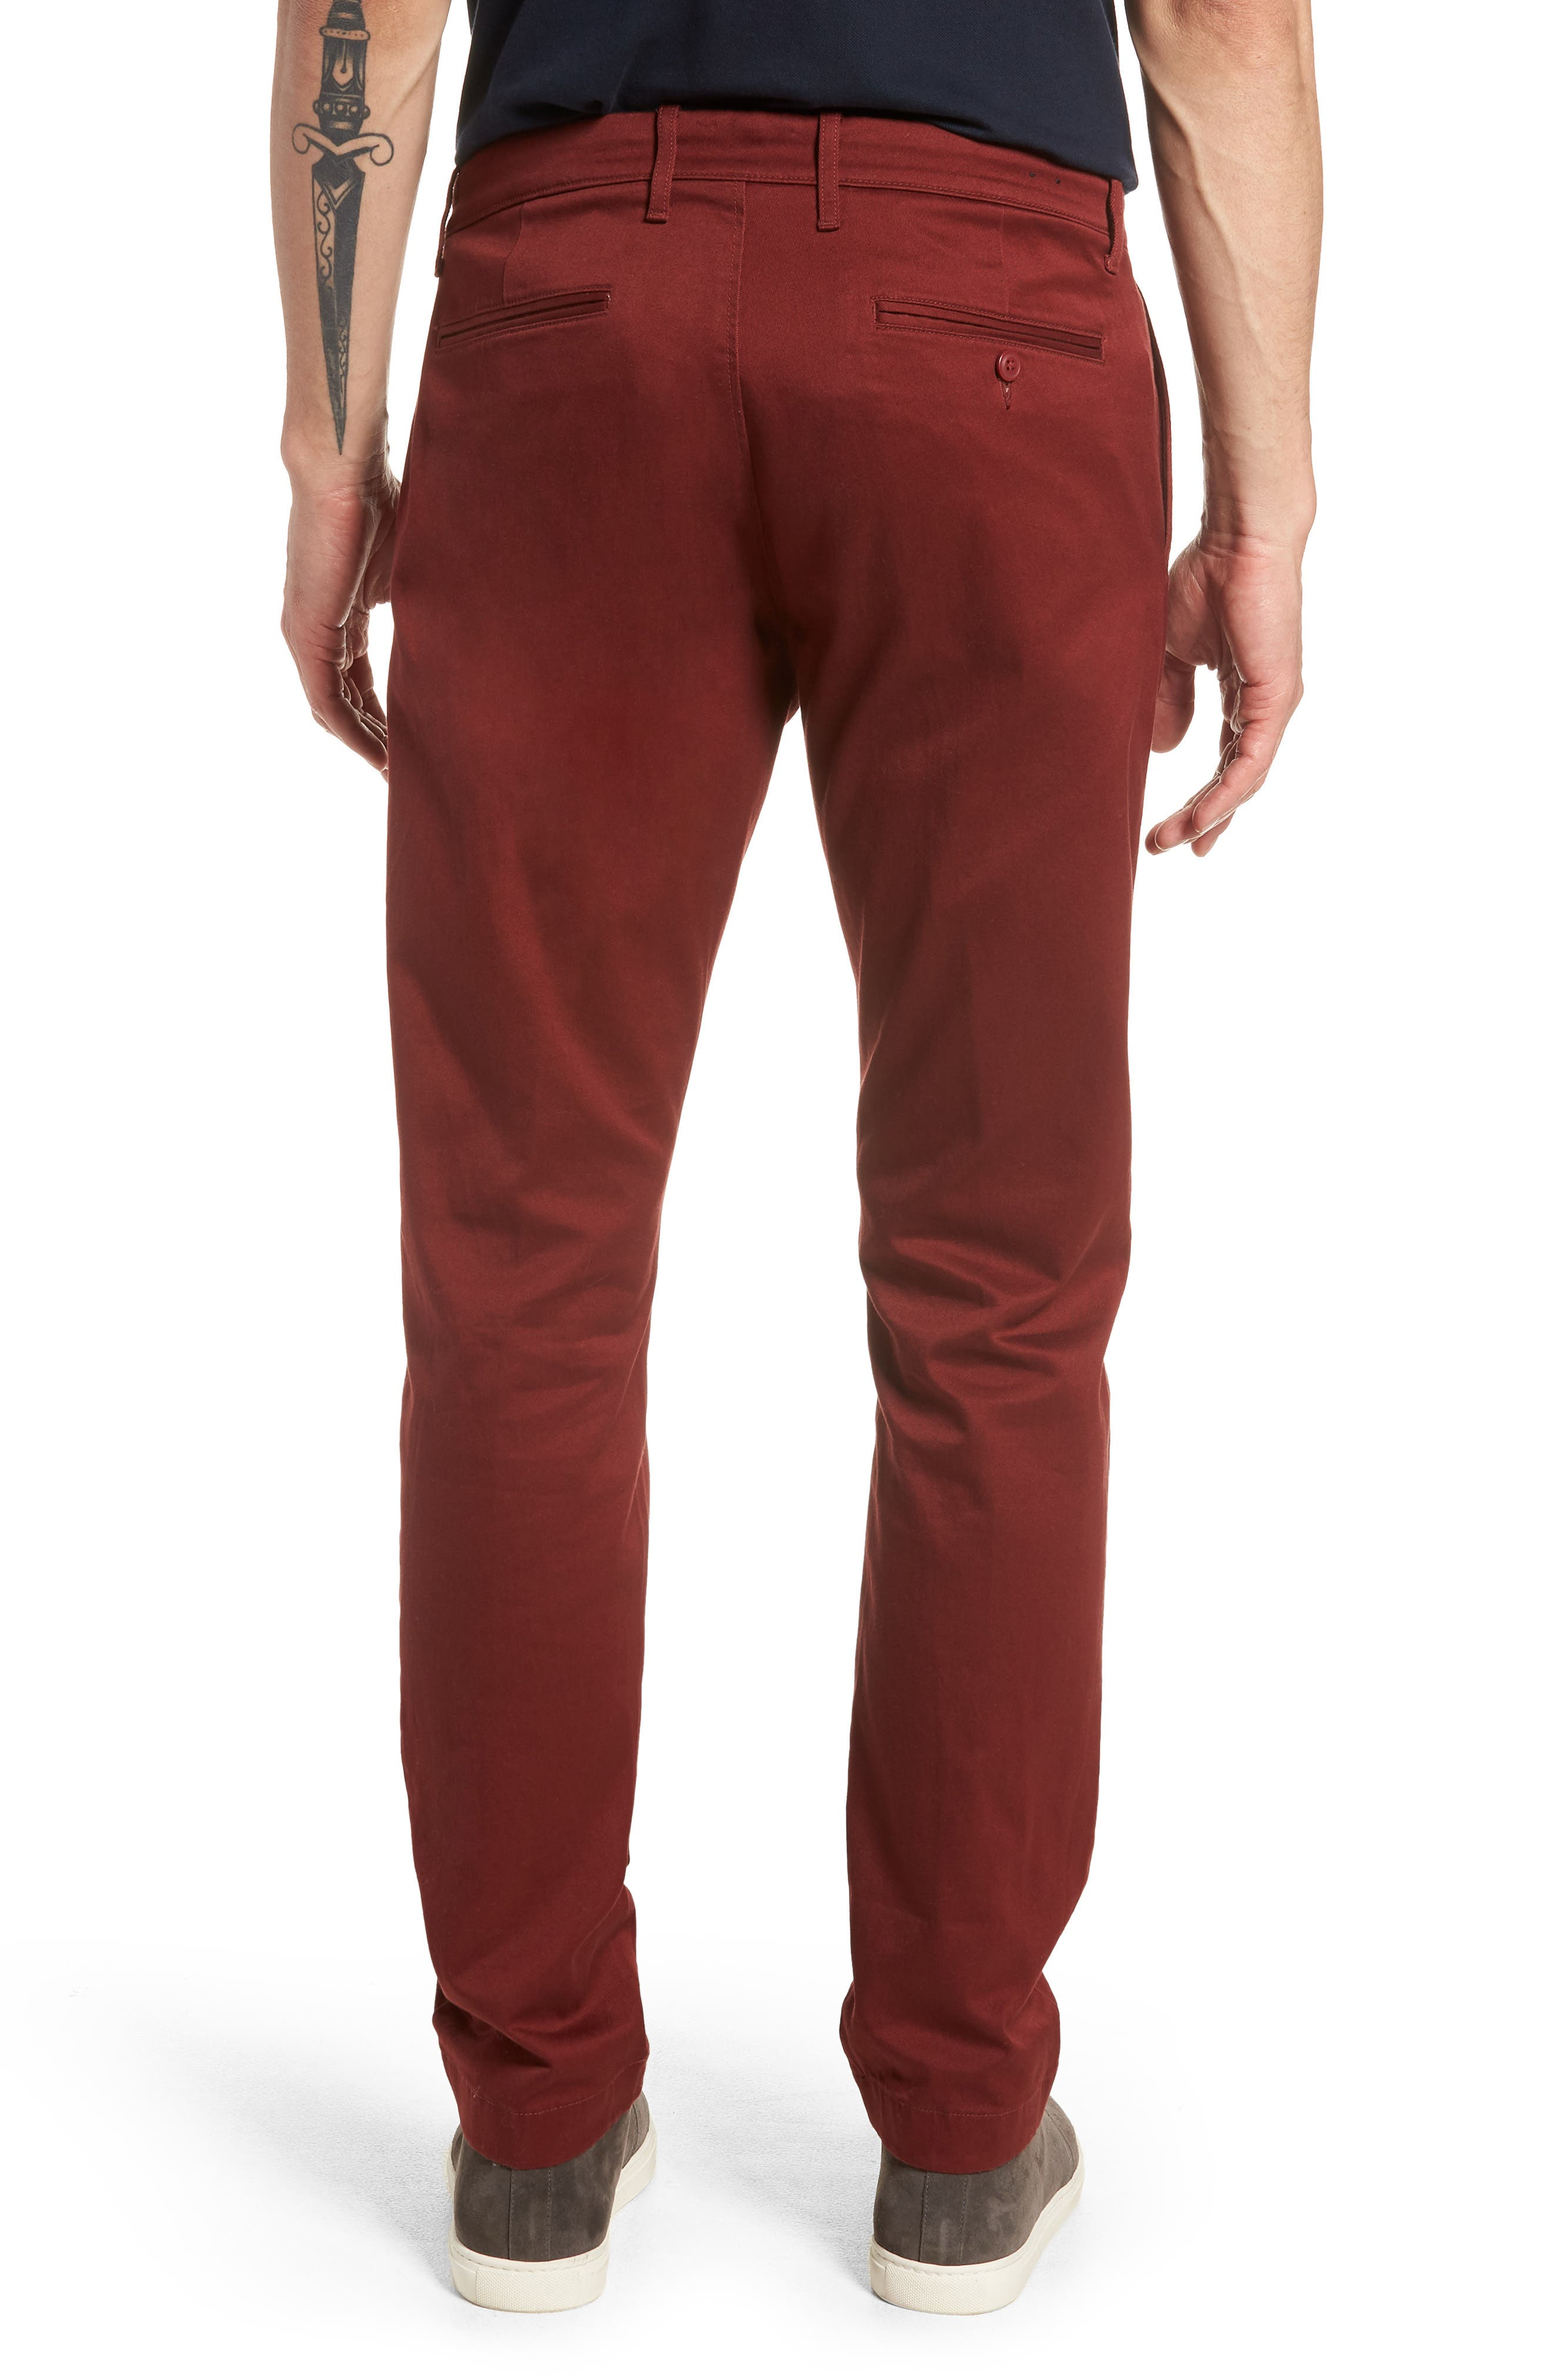 484 Slim Fit Stretch Chino Pants,                             Alternate thumbnail 18, color,